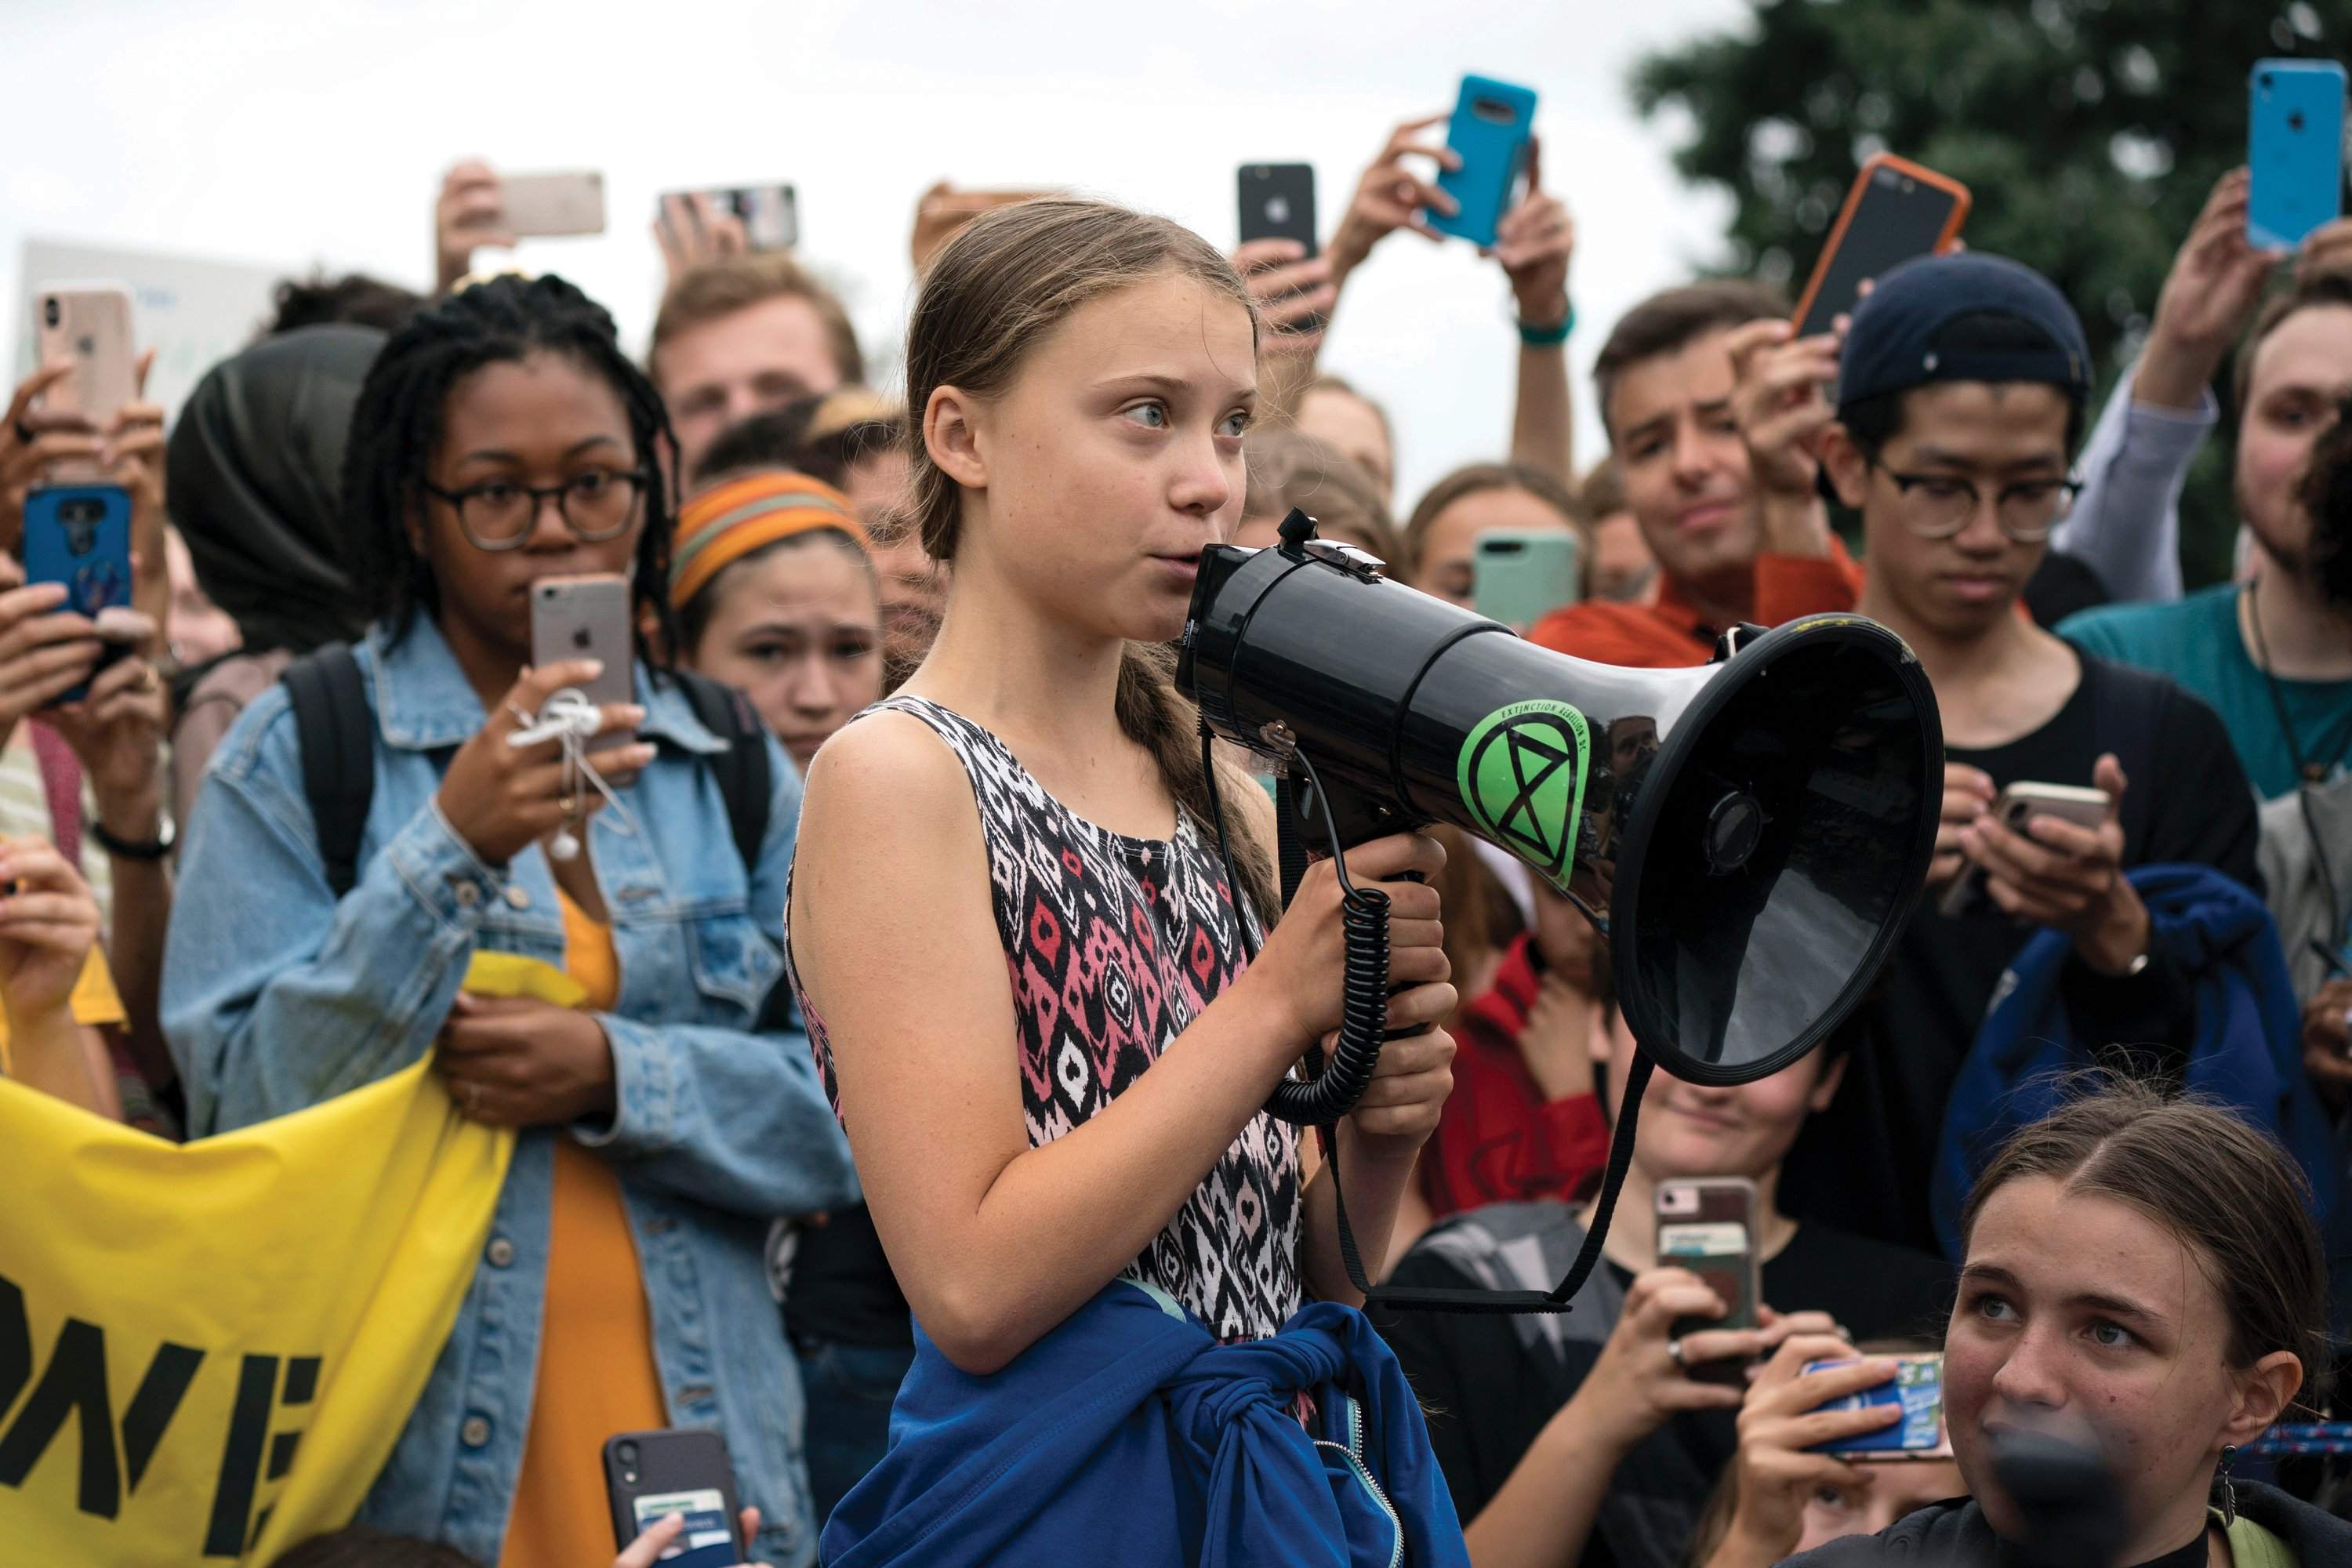 What marketers can learn from Greta Thunberg